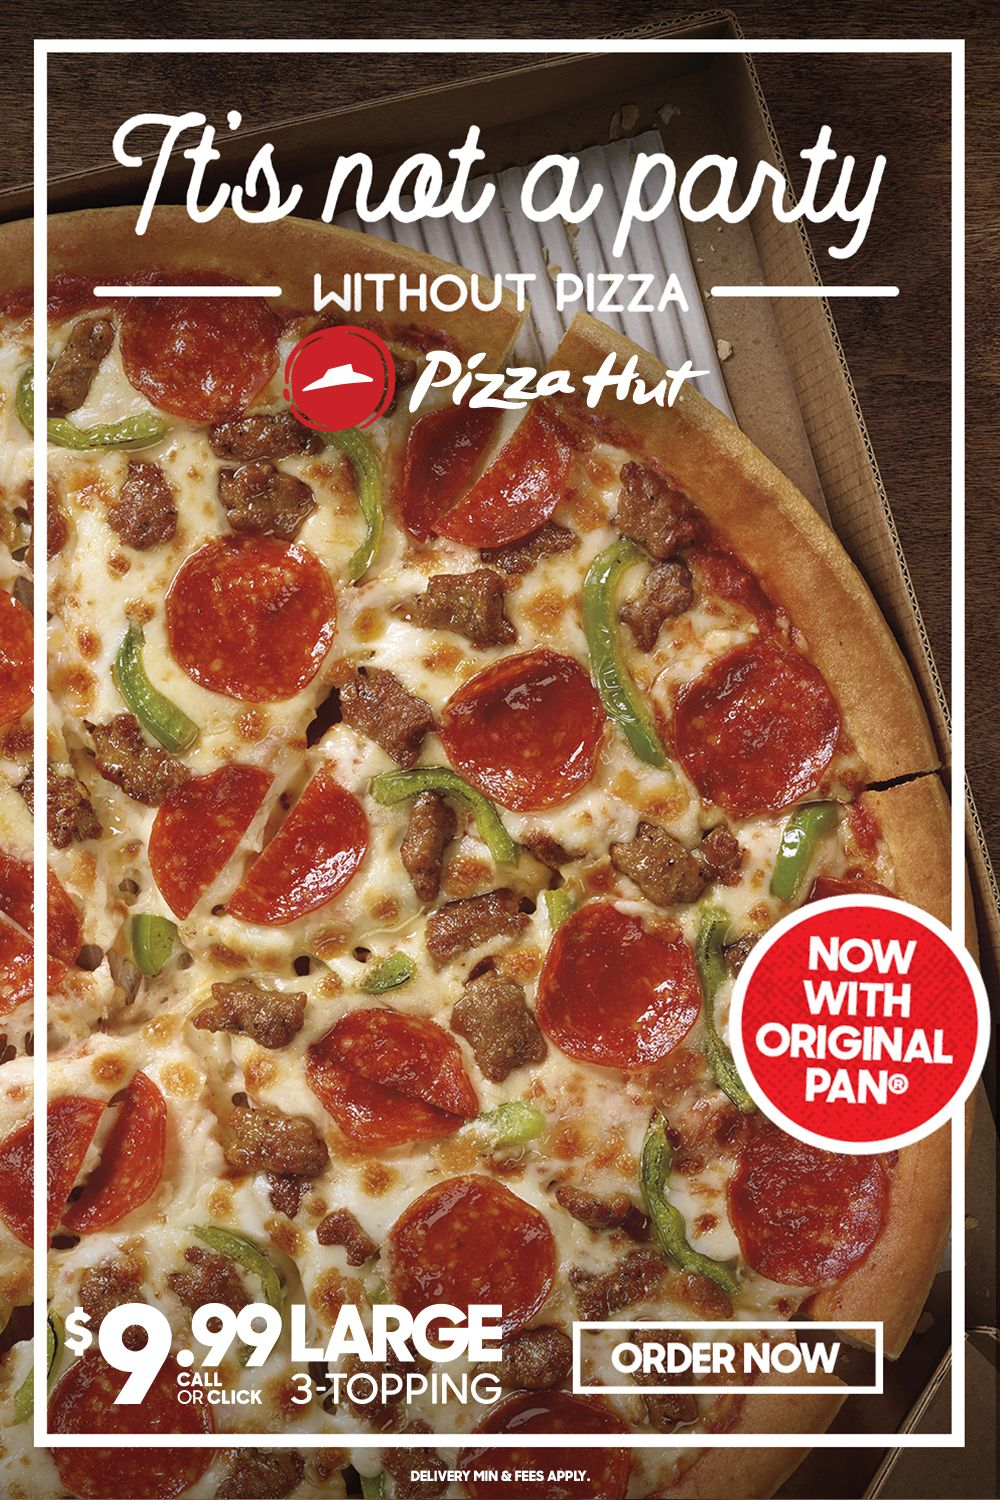 752c5c10ba06414a3bedce3a2ca8d9d1 - Pizza Hut Com Online Application